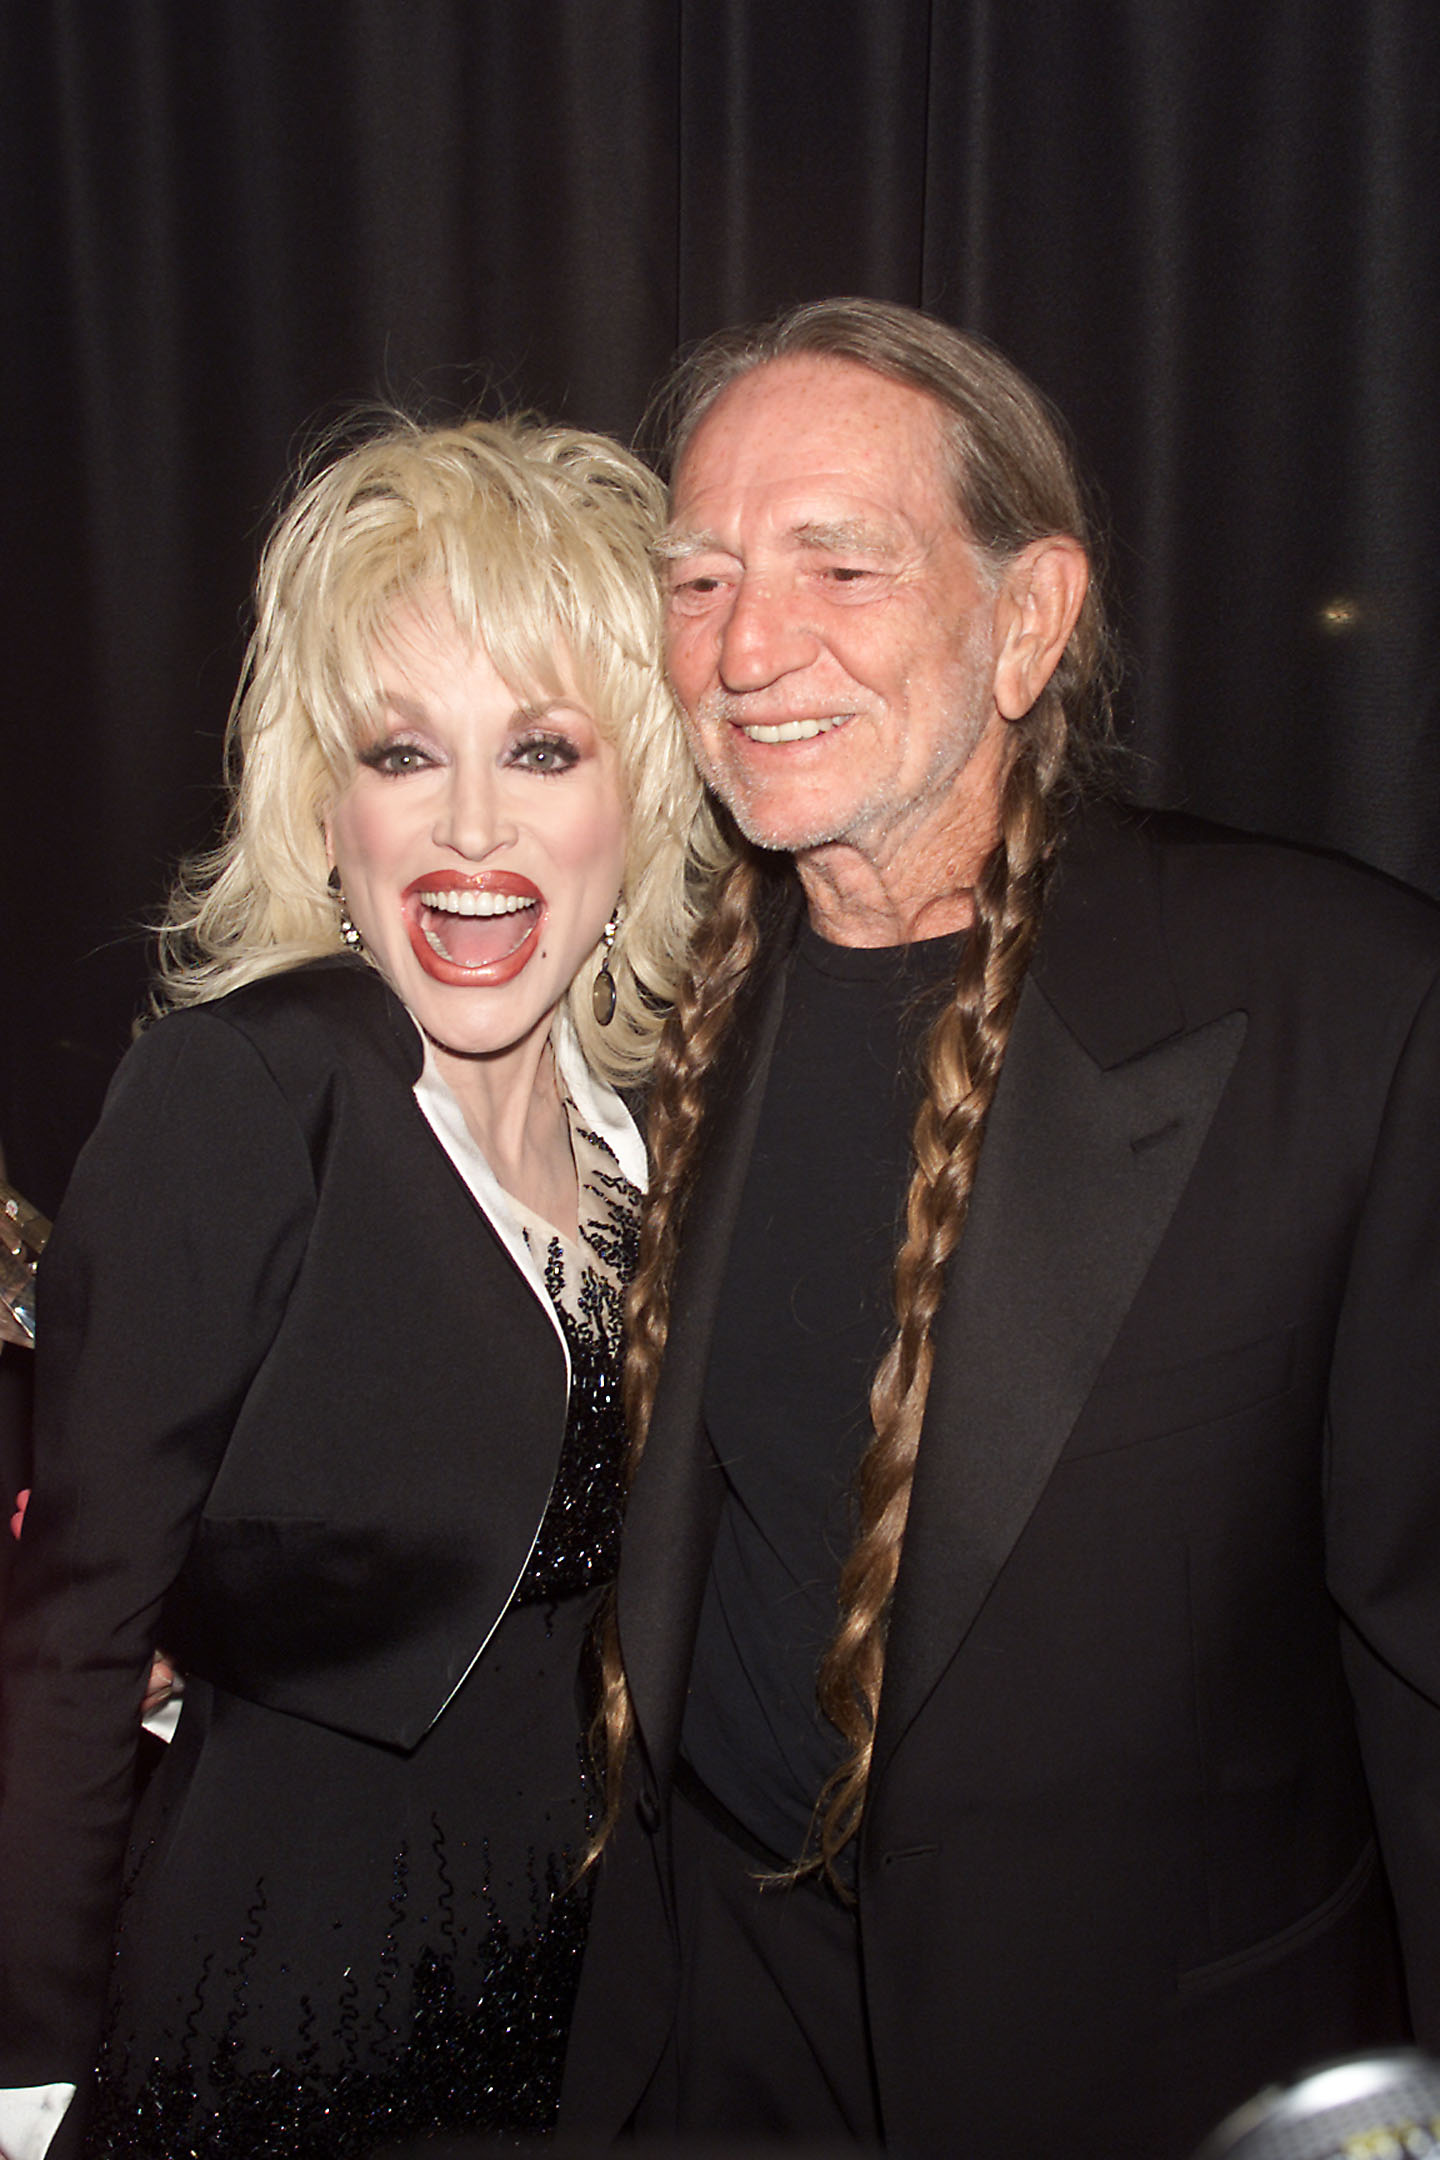 Willie Nelson and Dolly Parton are among the artists profiled and interviewed in the documentary.